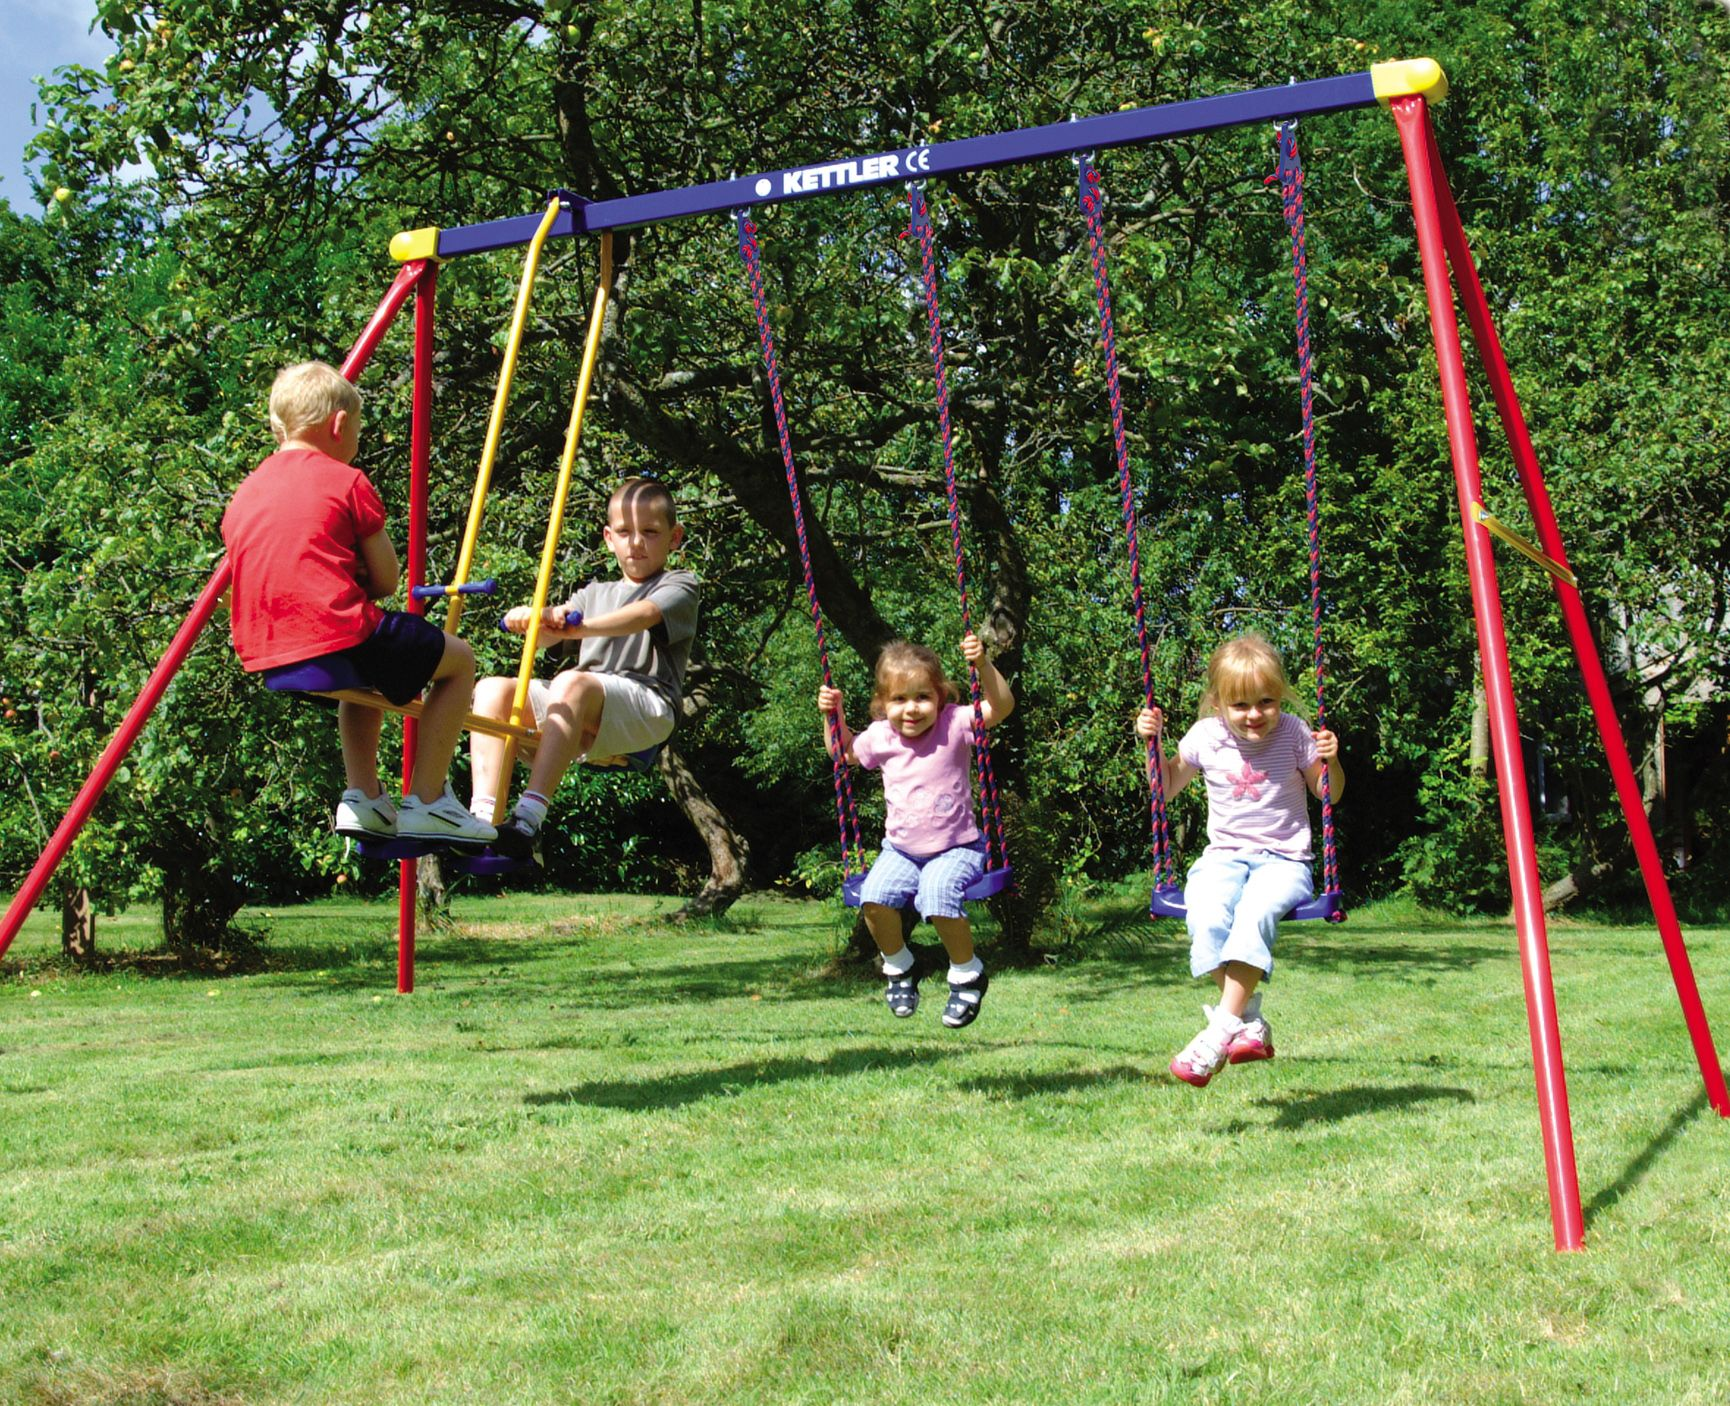 Swingset With 2 Regular Swings And Glider Swing Play Swing Set Playset Outdoor Swing Set